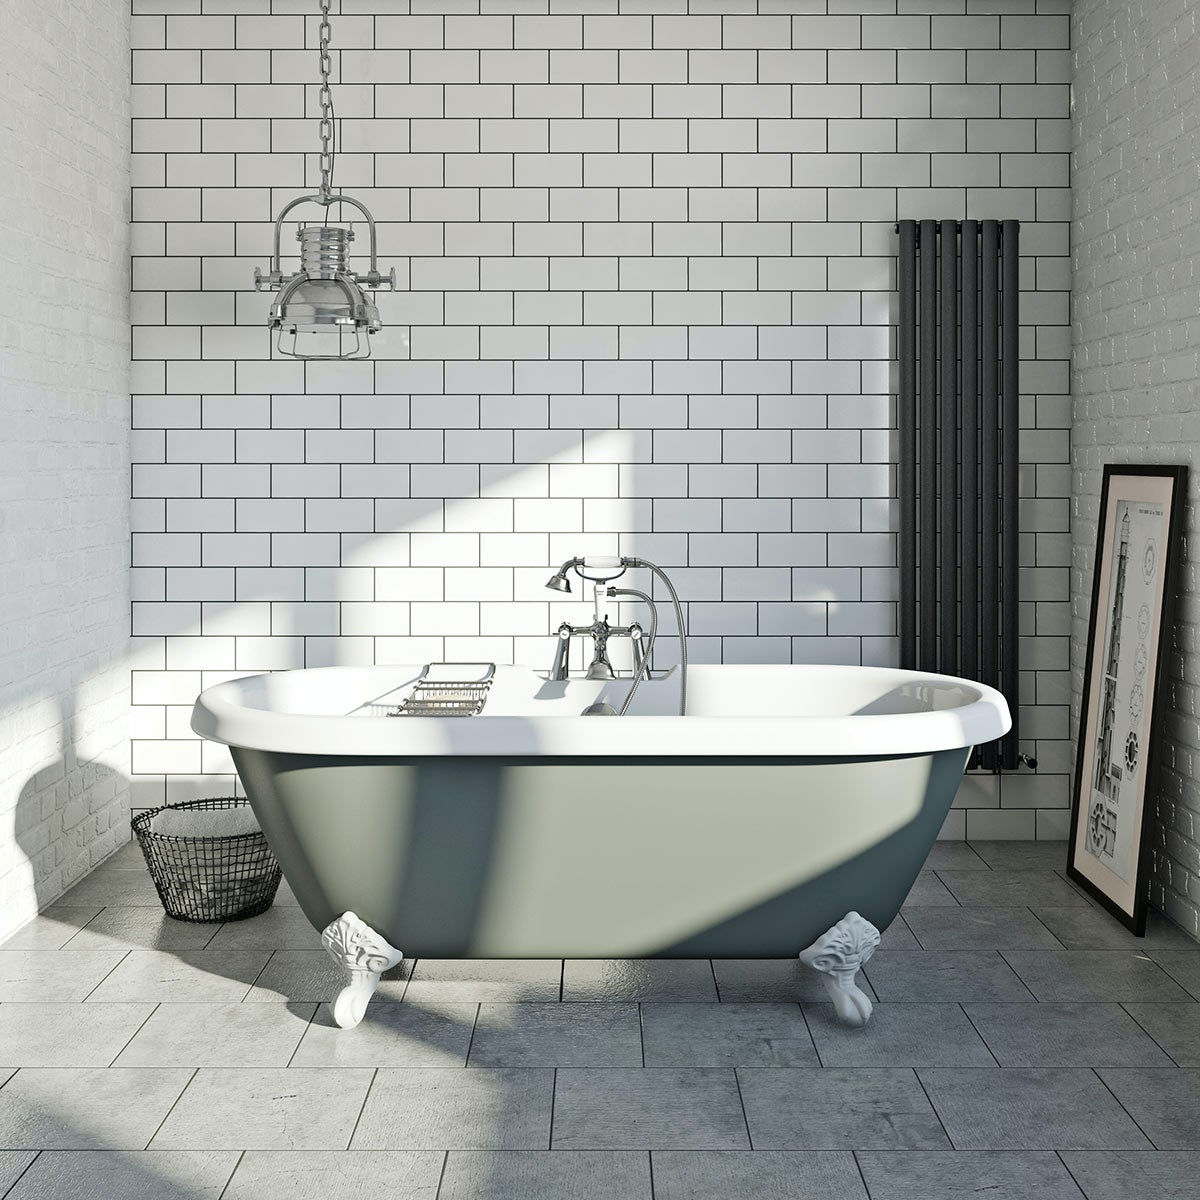 British Ceramic Tile Metropolis mid grey matt tile 331mm x 331mm